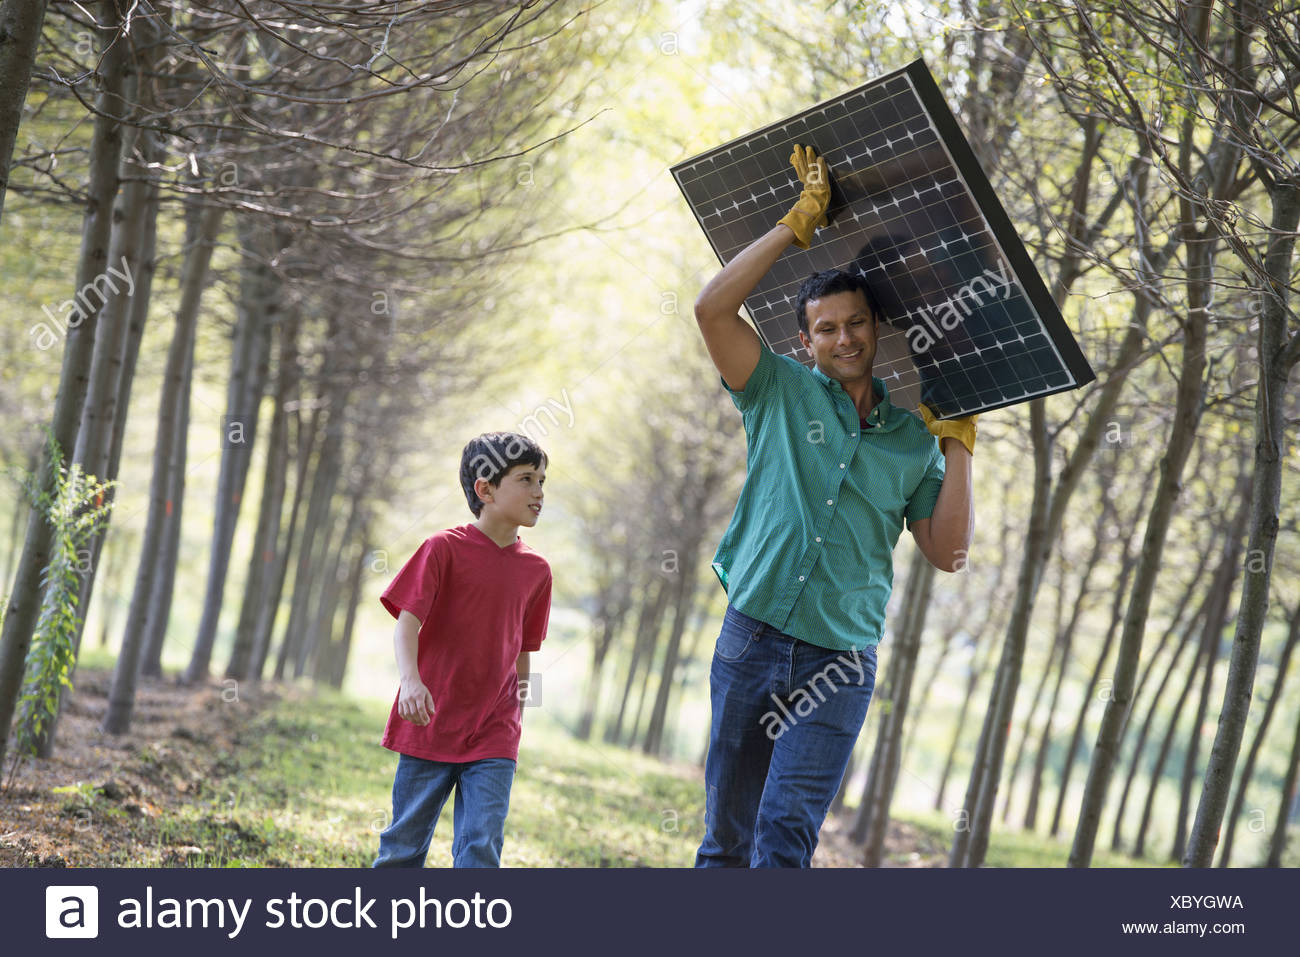 A man carrying a solar panel down an avenue of trees accompanied by a child. - Stock Image